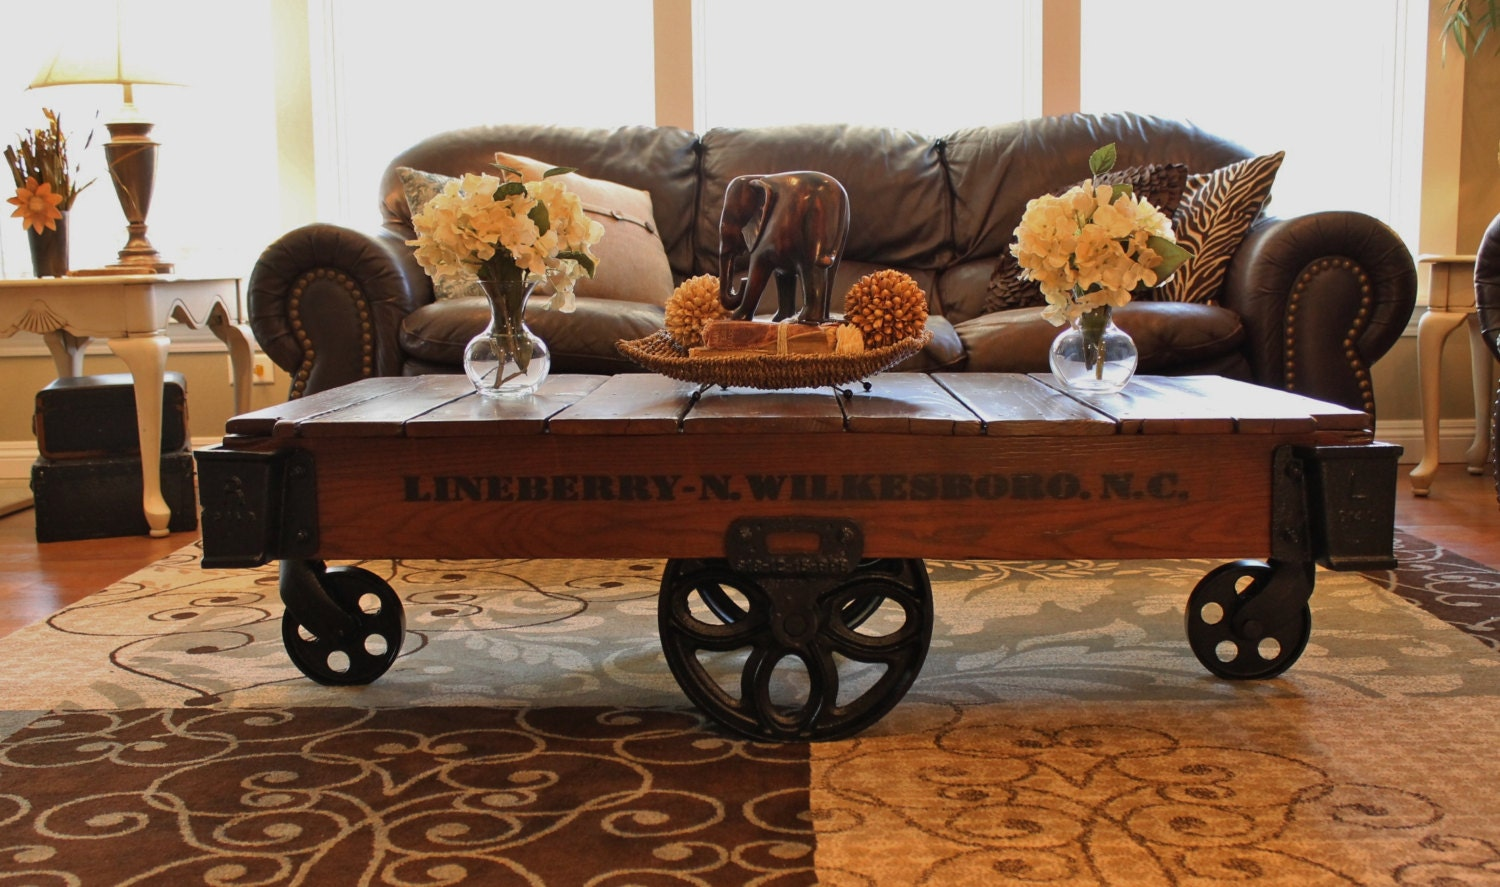 Vintage Restored Lineberry Factory Cart Daisy Wheel Coffee Table Haute Juice